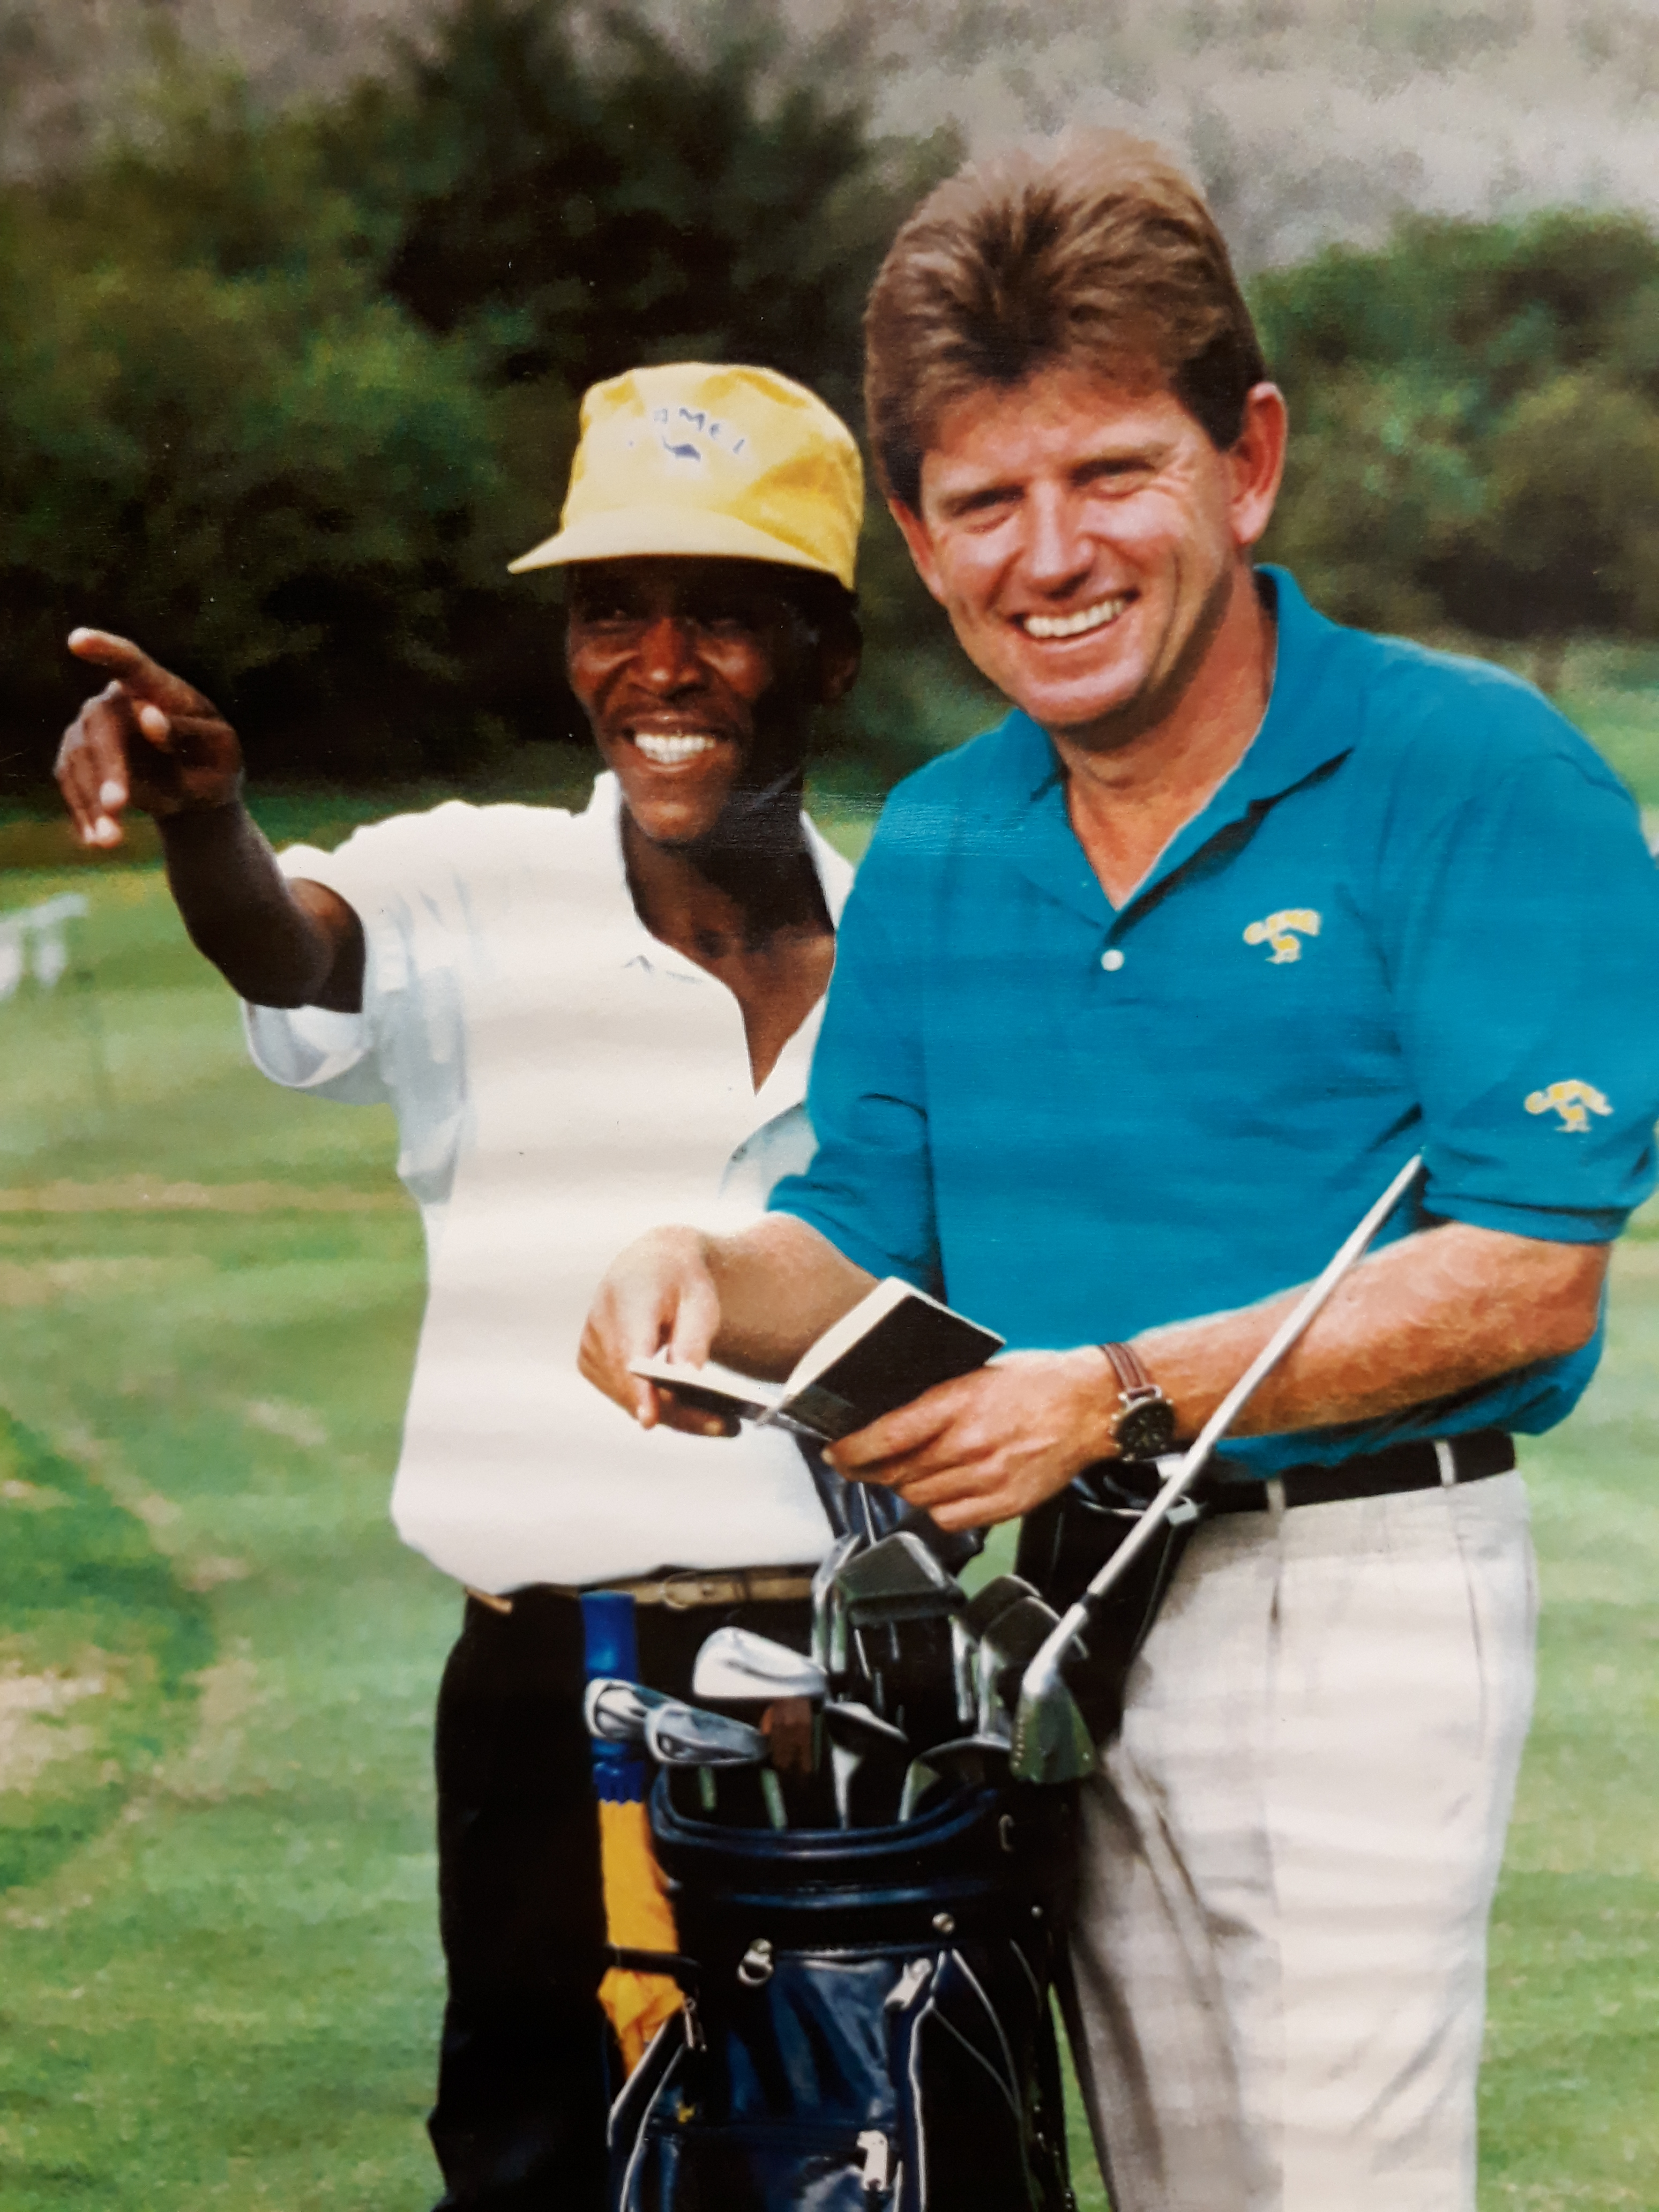 Nick Price chooses Caddie Captain for the Presidents Cup Tournament in the USA